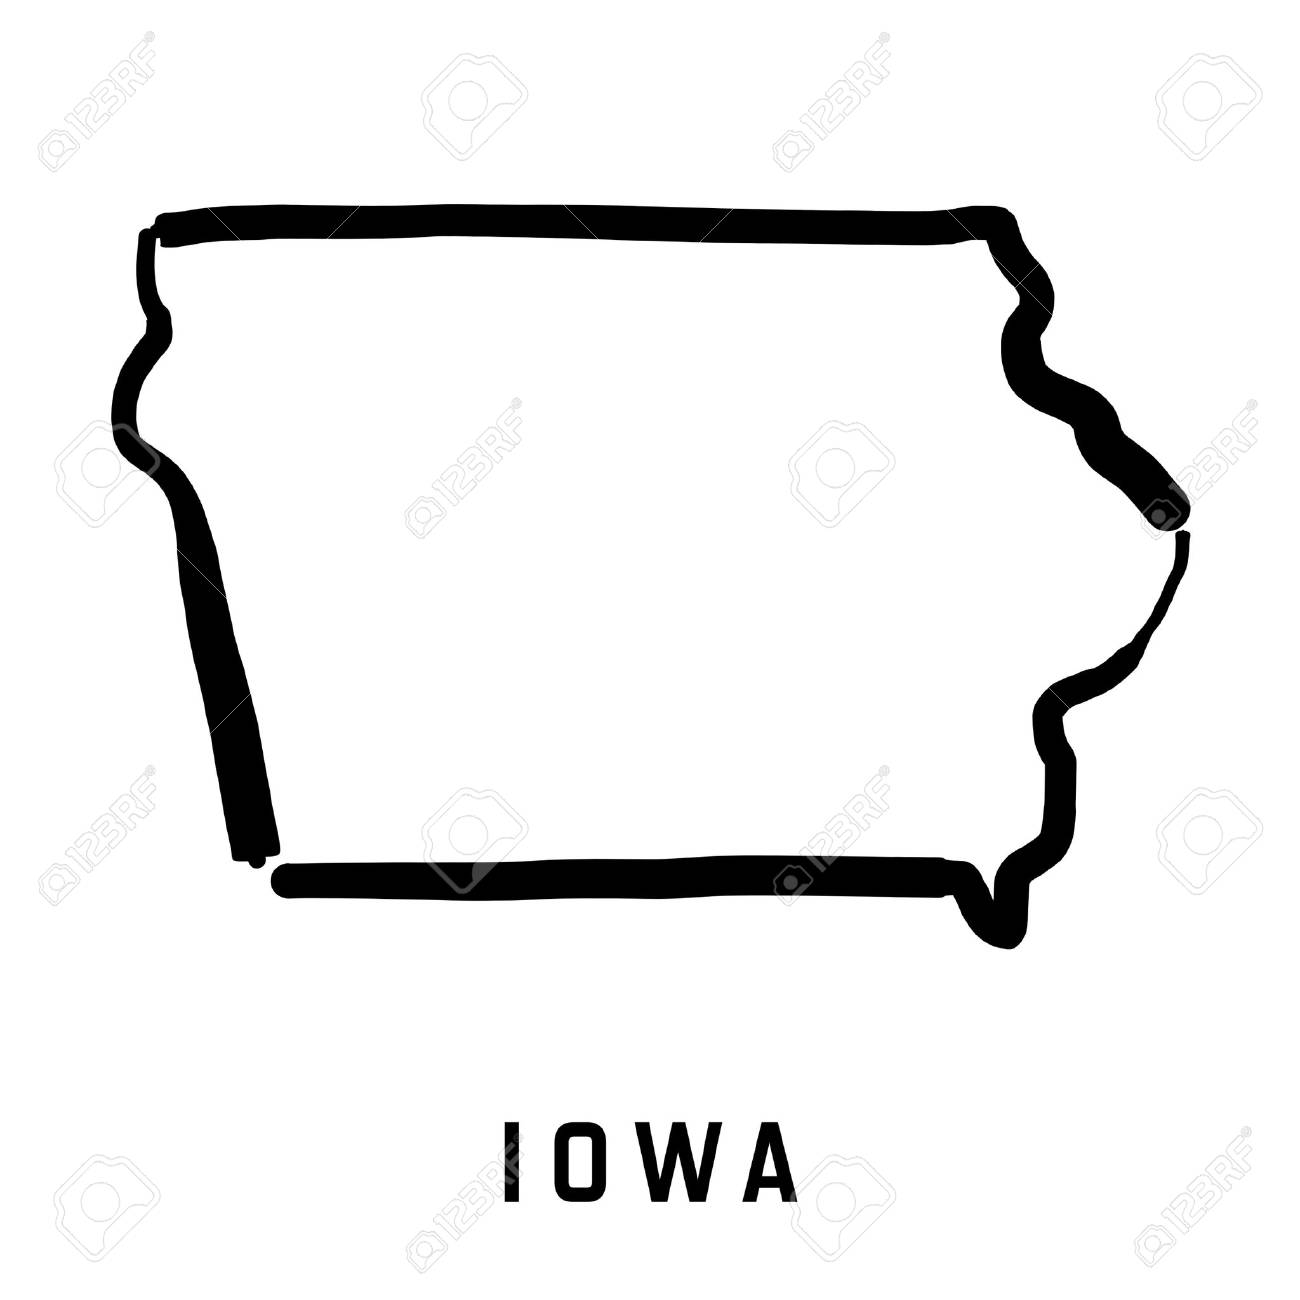 Iowa State Map Outline - Smooth Simplified US State Shape Map ...